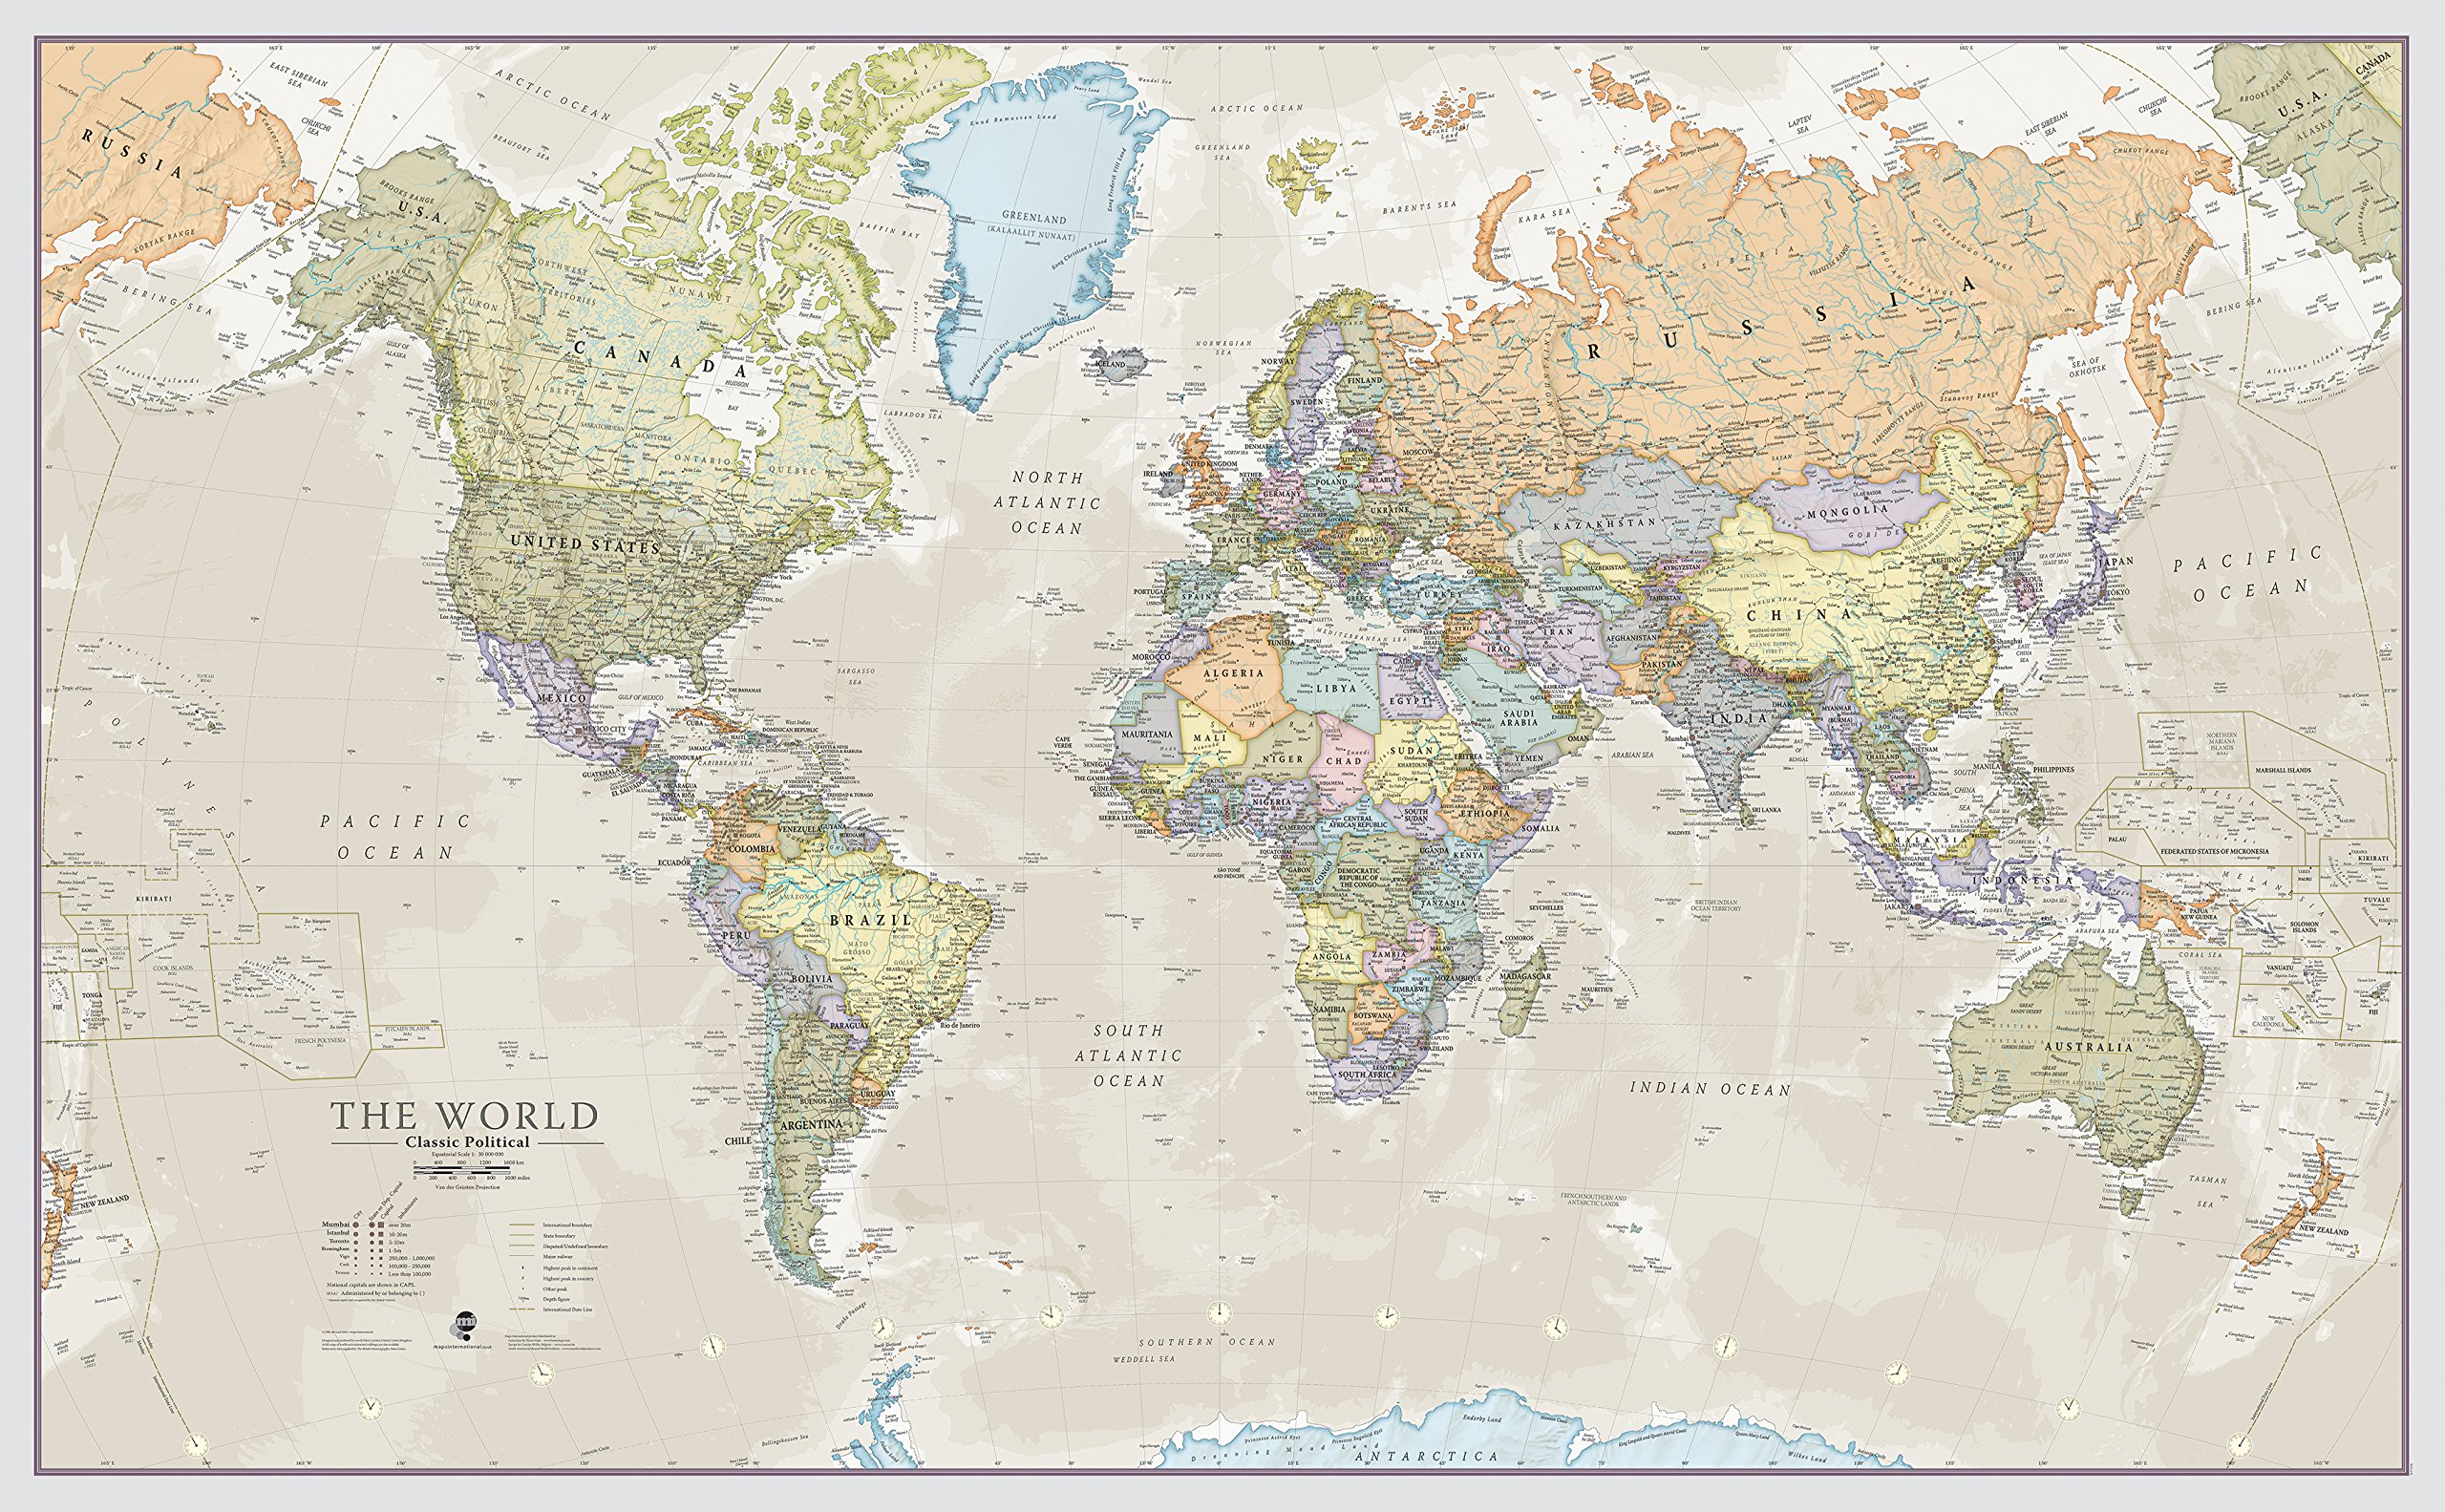 World maps amazon huge classic world map political poster laminatedencapsulated 197cm w x 1165 gumiabroncs Image collections